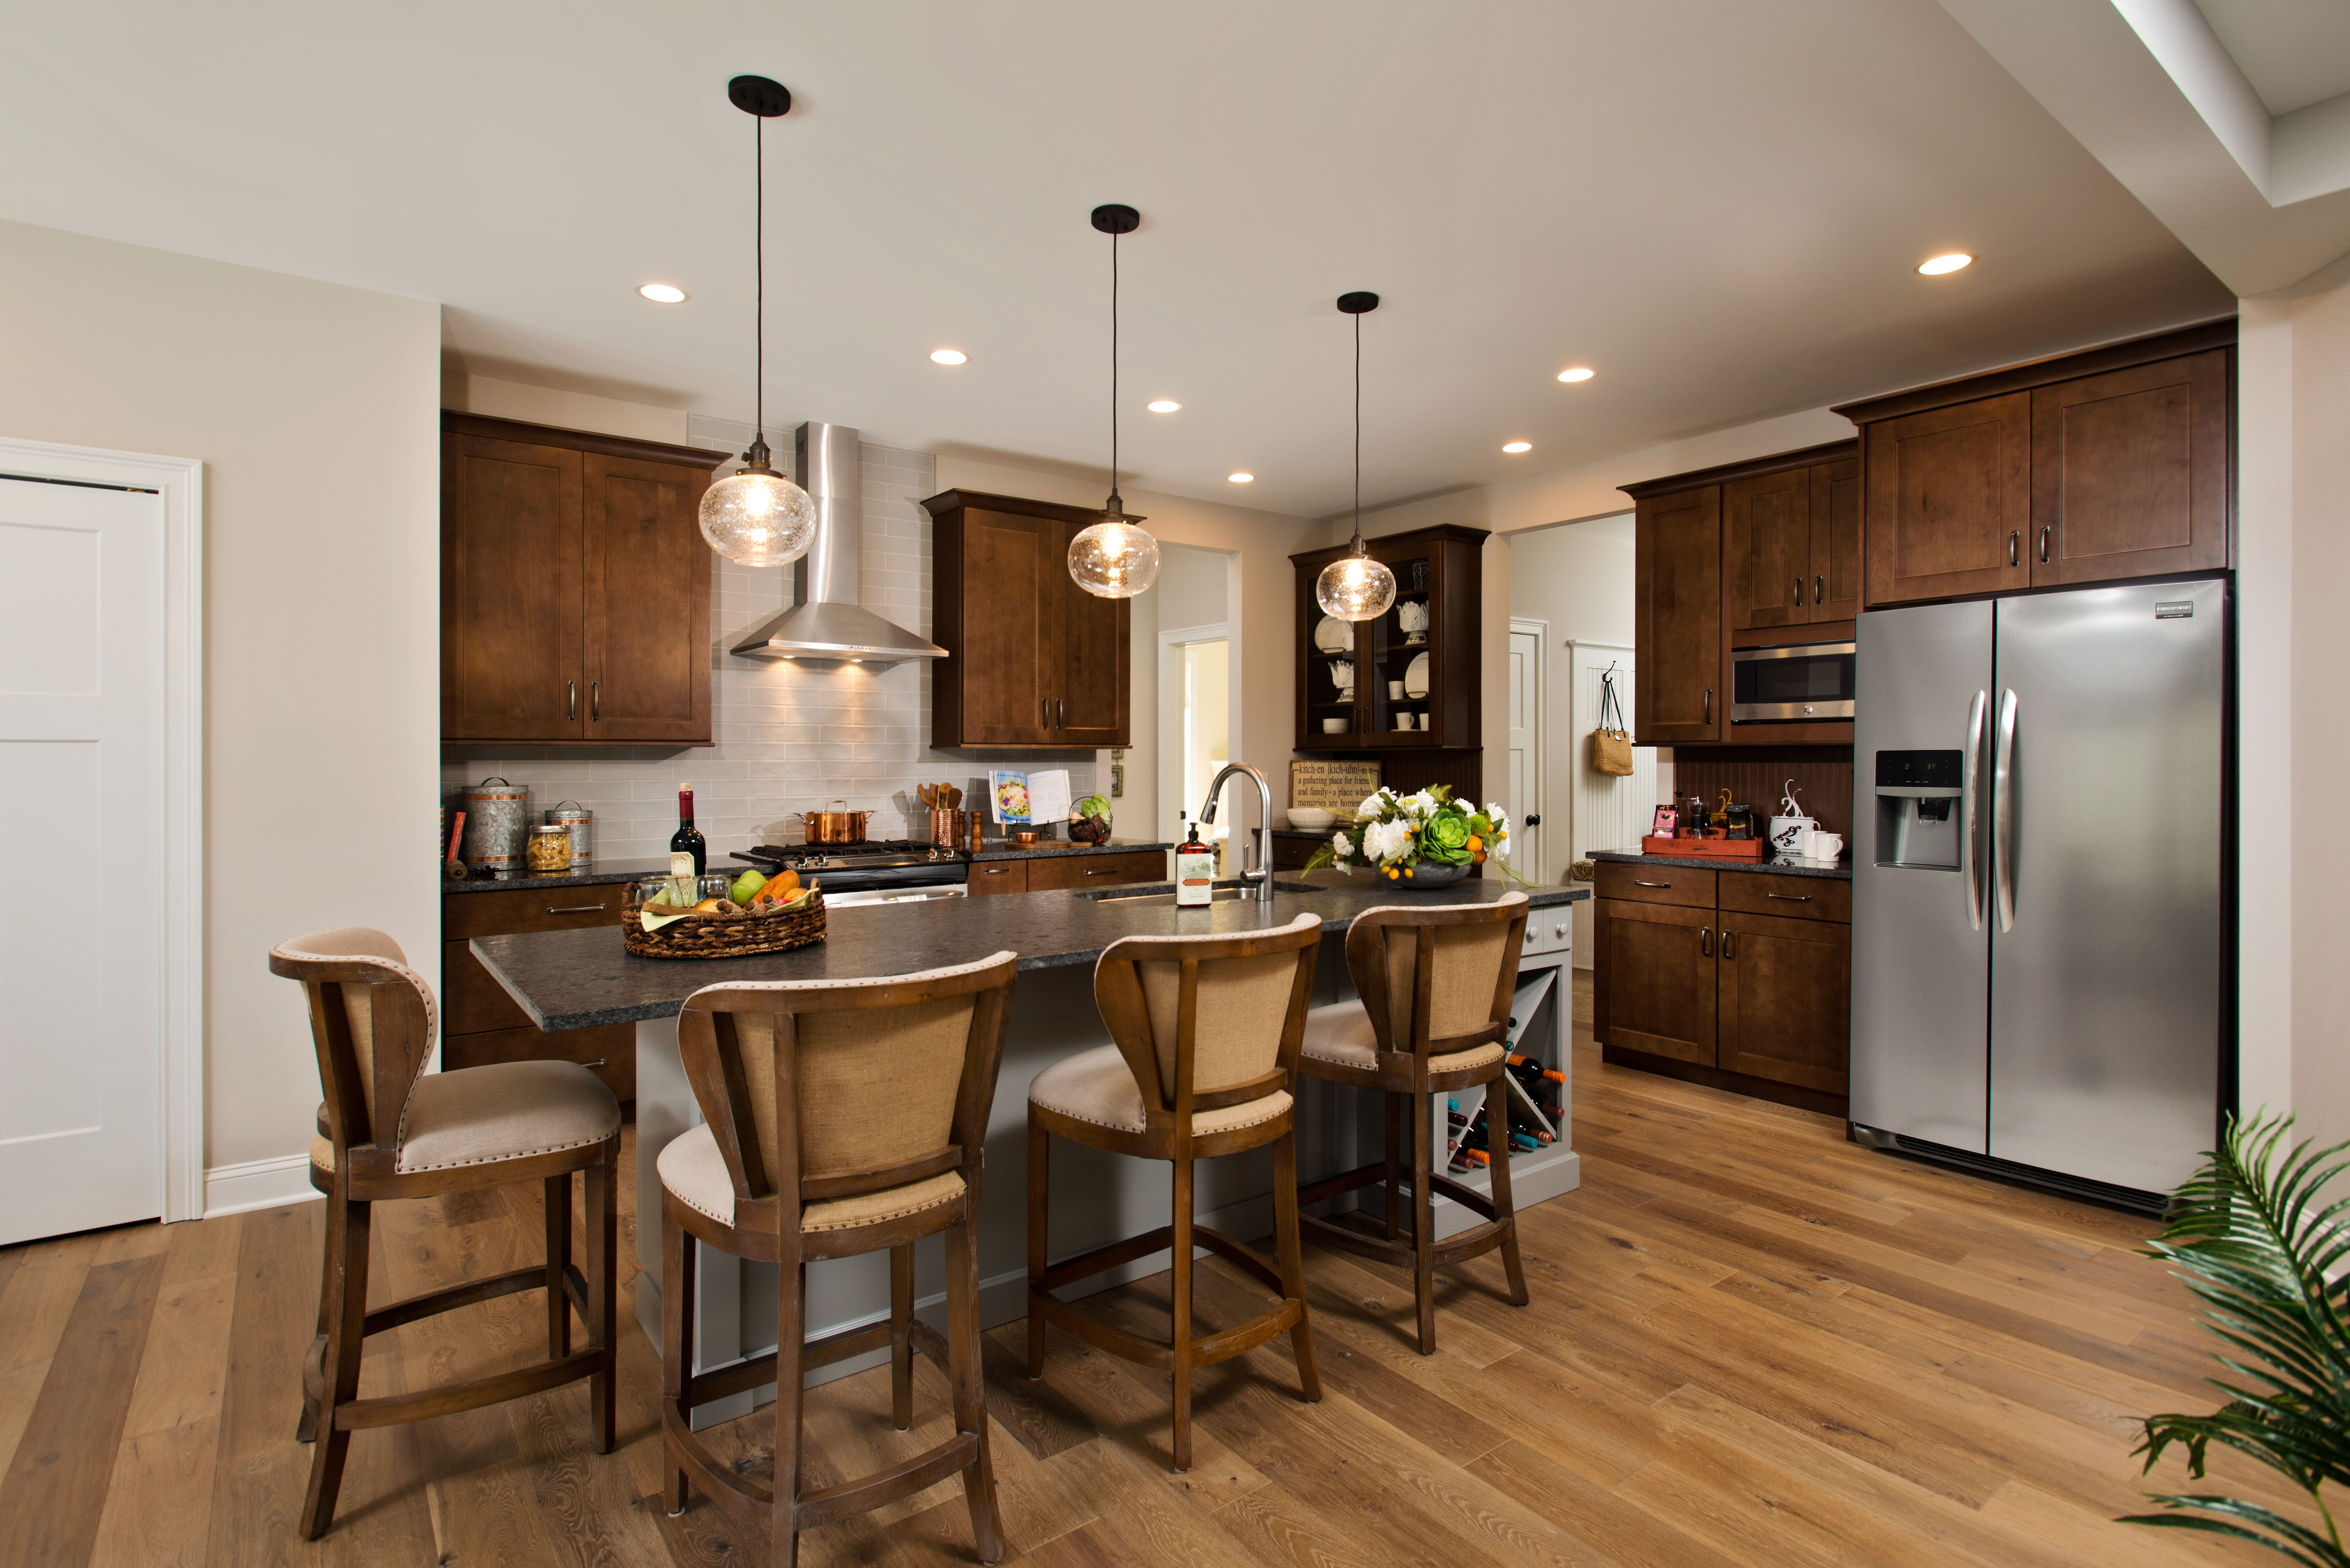 Kitchen featured in the Castleton By Belmonte Builders in Albany-Saratoga, NY